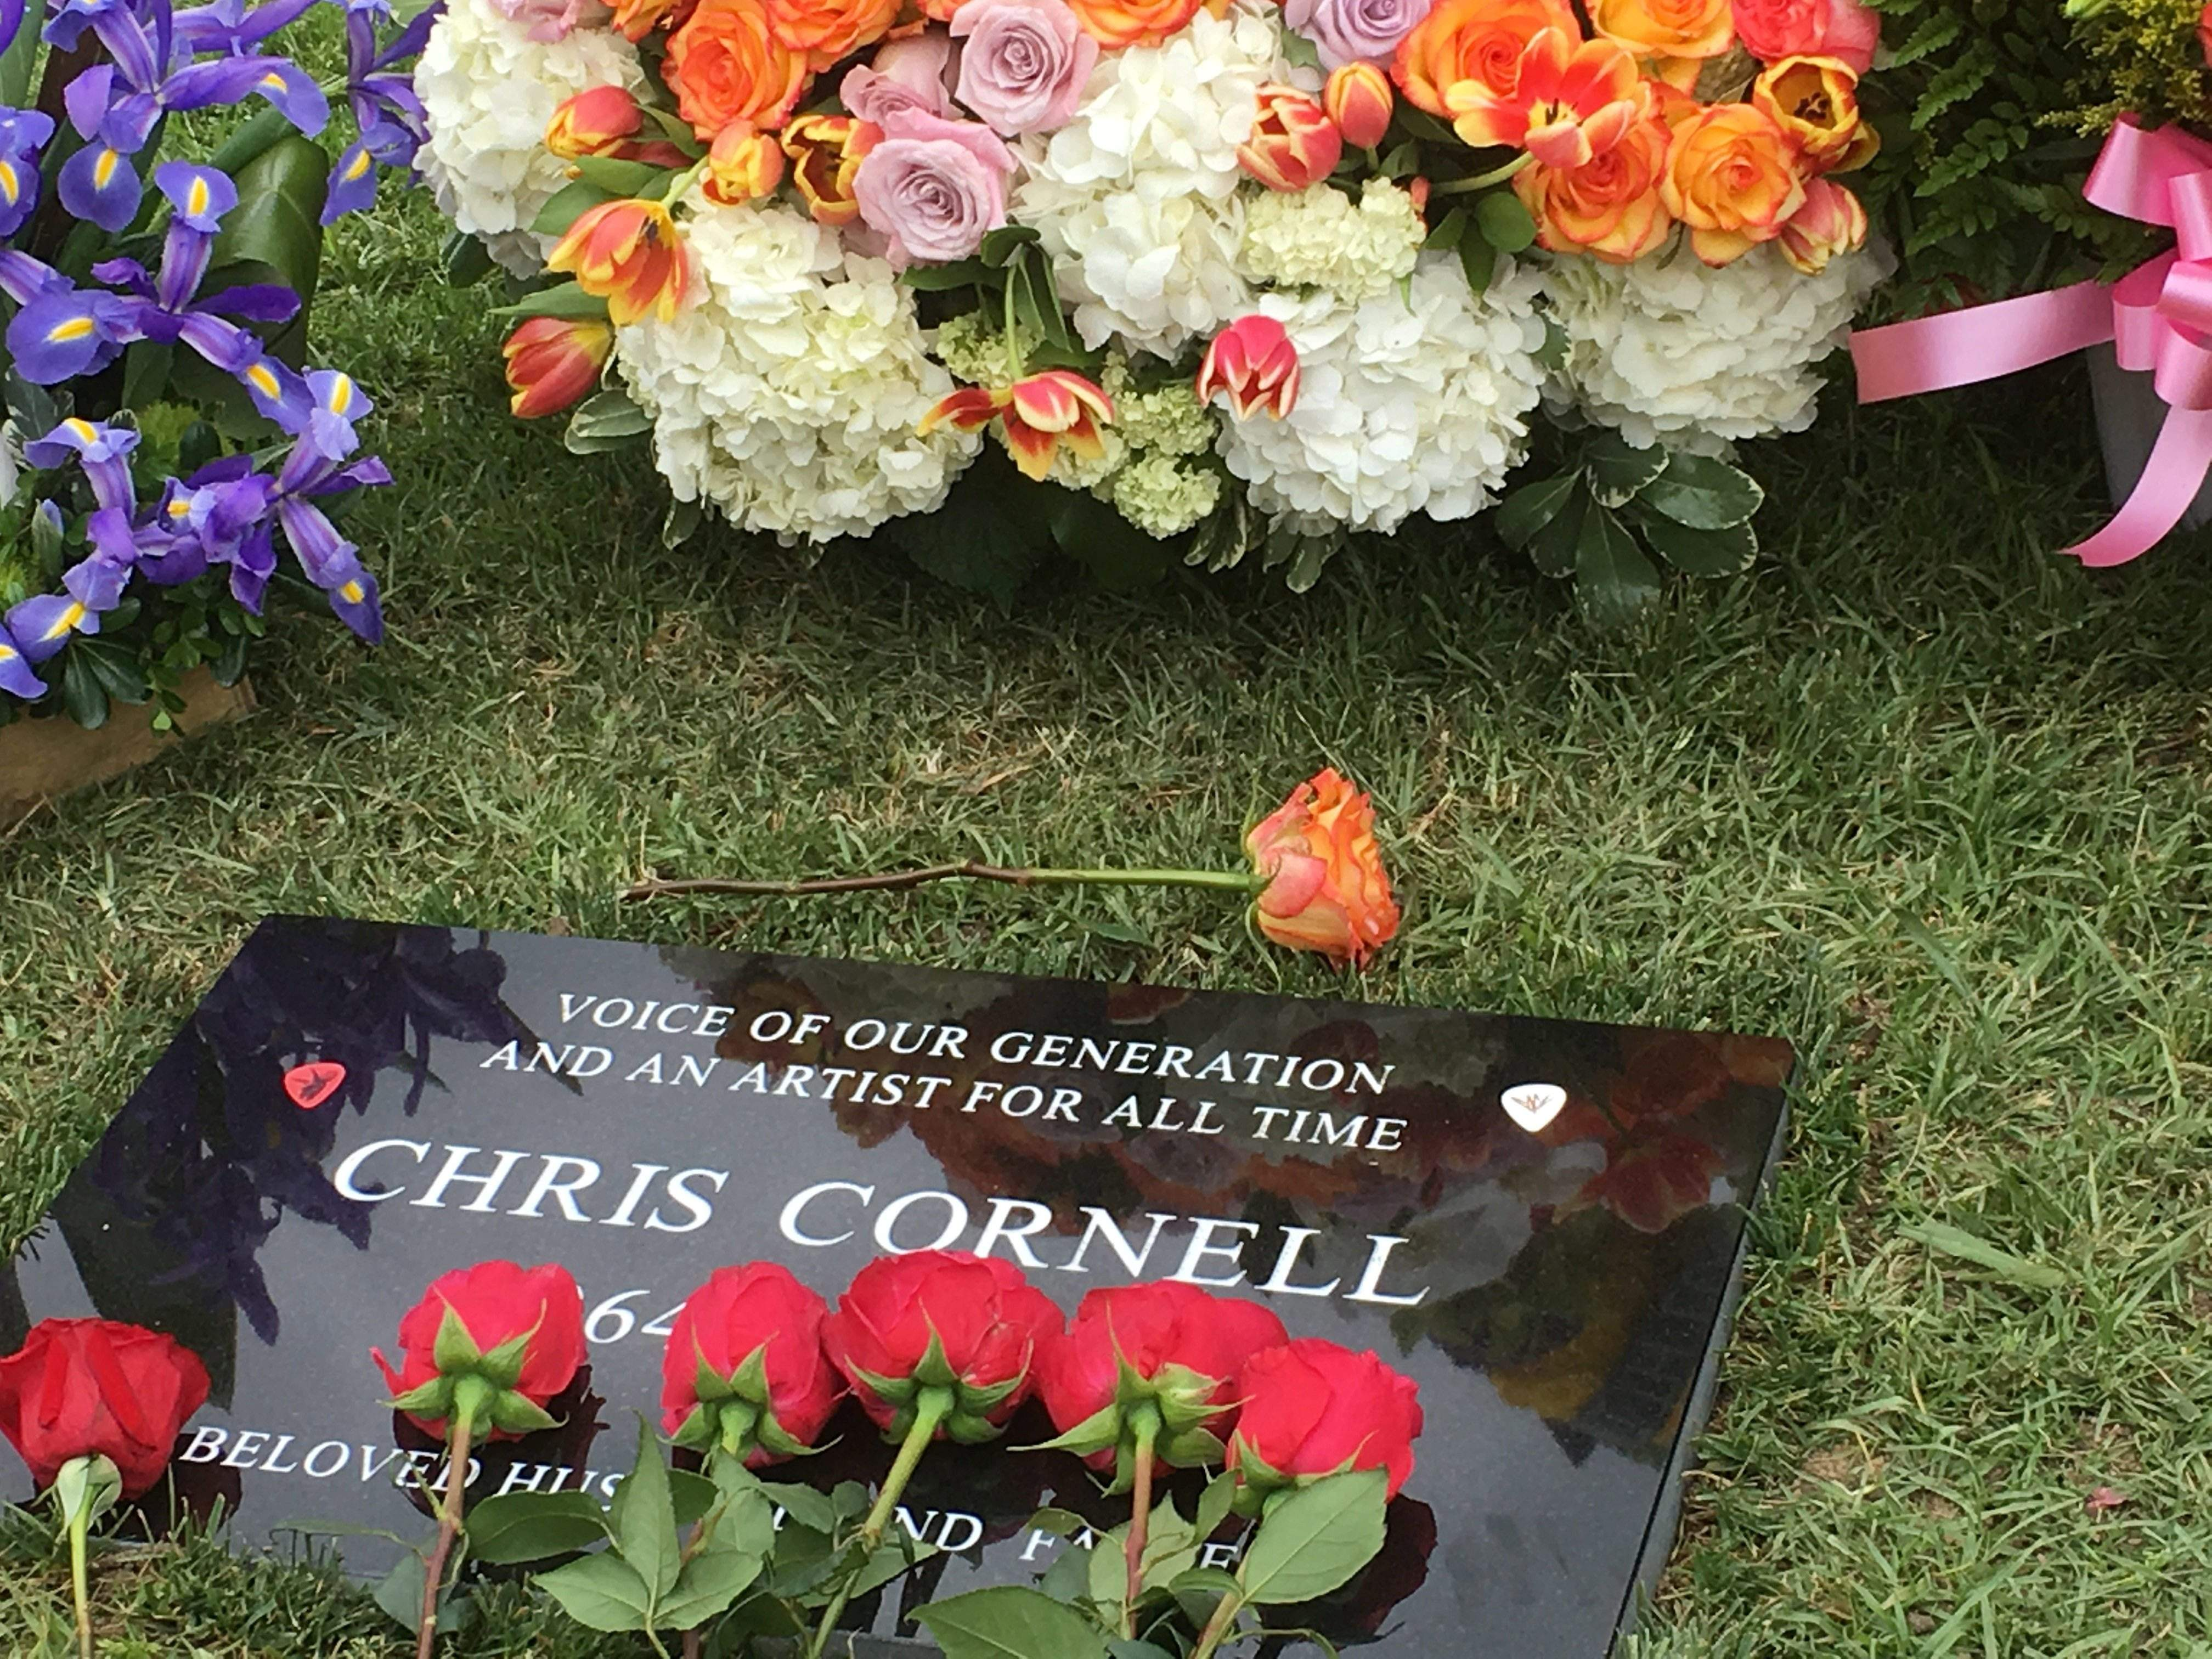 Chris cornell remembered as voice of our generation flowers adorn the grave marker for musician chris cornell at the hollywood forever cemetery on friday in los angeles cornell 52 who gained fame as the izmirmasajfo